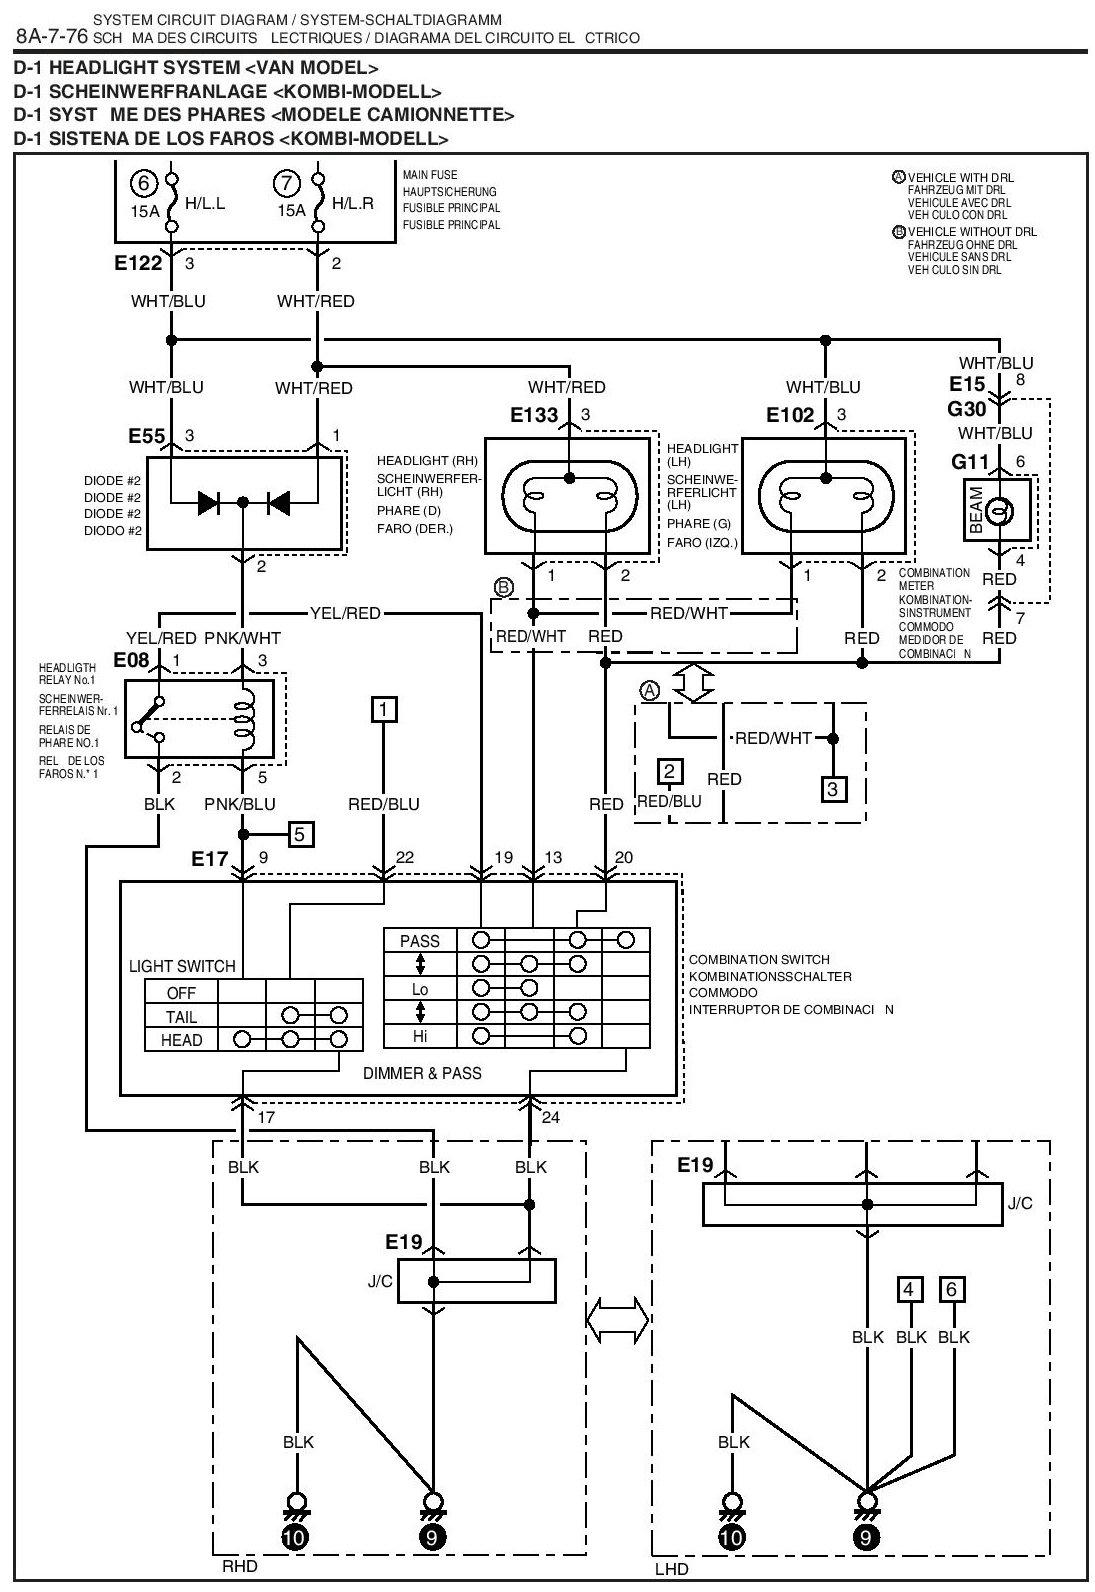 Chevrolet Equinox Serpentine Belt Diagram Wiring